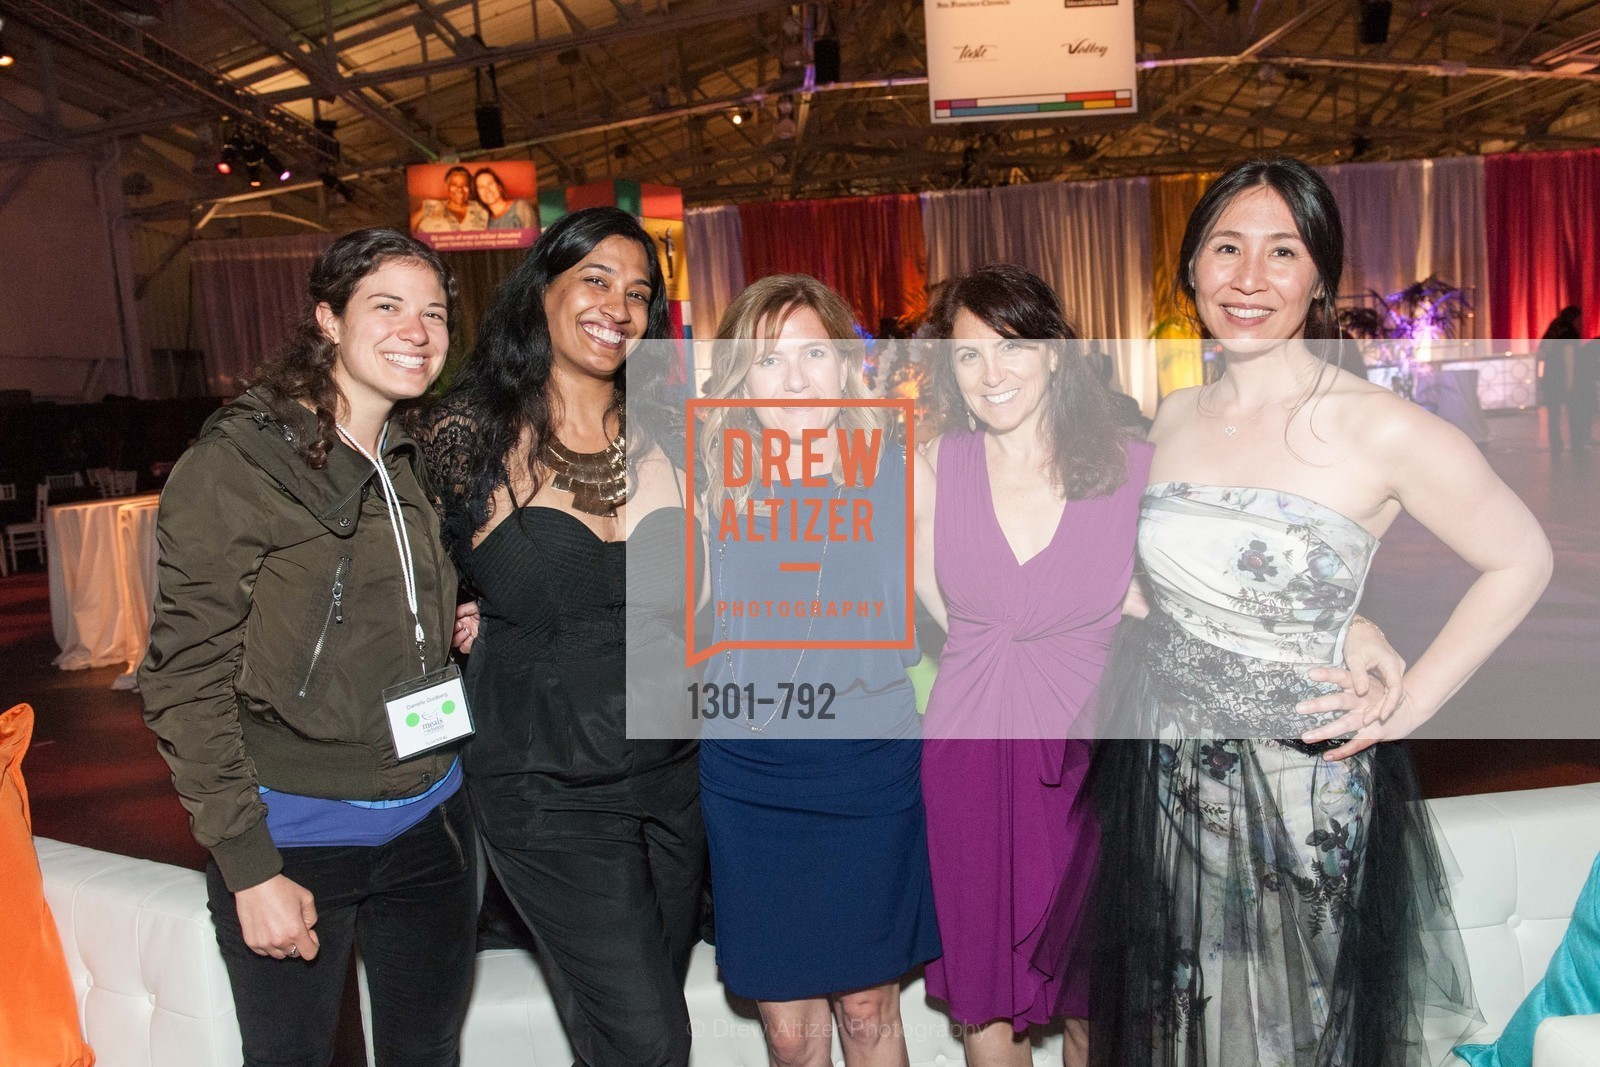 Danielle Goldberg, Neetha Iyer, Jan Busch, Deb Flazer, Vivien Thorp, MEALS ON WHEELS OF SAN FRANCISCO'S 28th Annual Star Chefs and Vintners Gala, US, April 20th, 2015,Drew Altizer, Drew Altizer Photography, full-service agency, private events, San Francisco photographer, photographer california